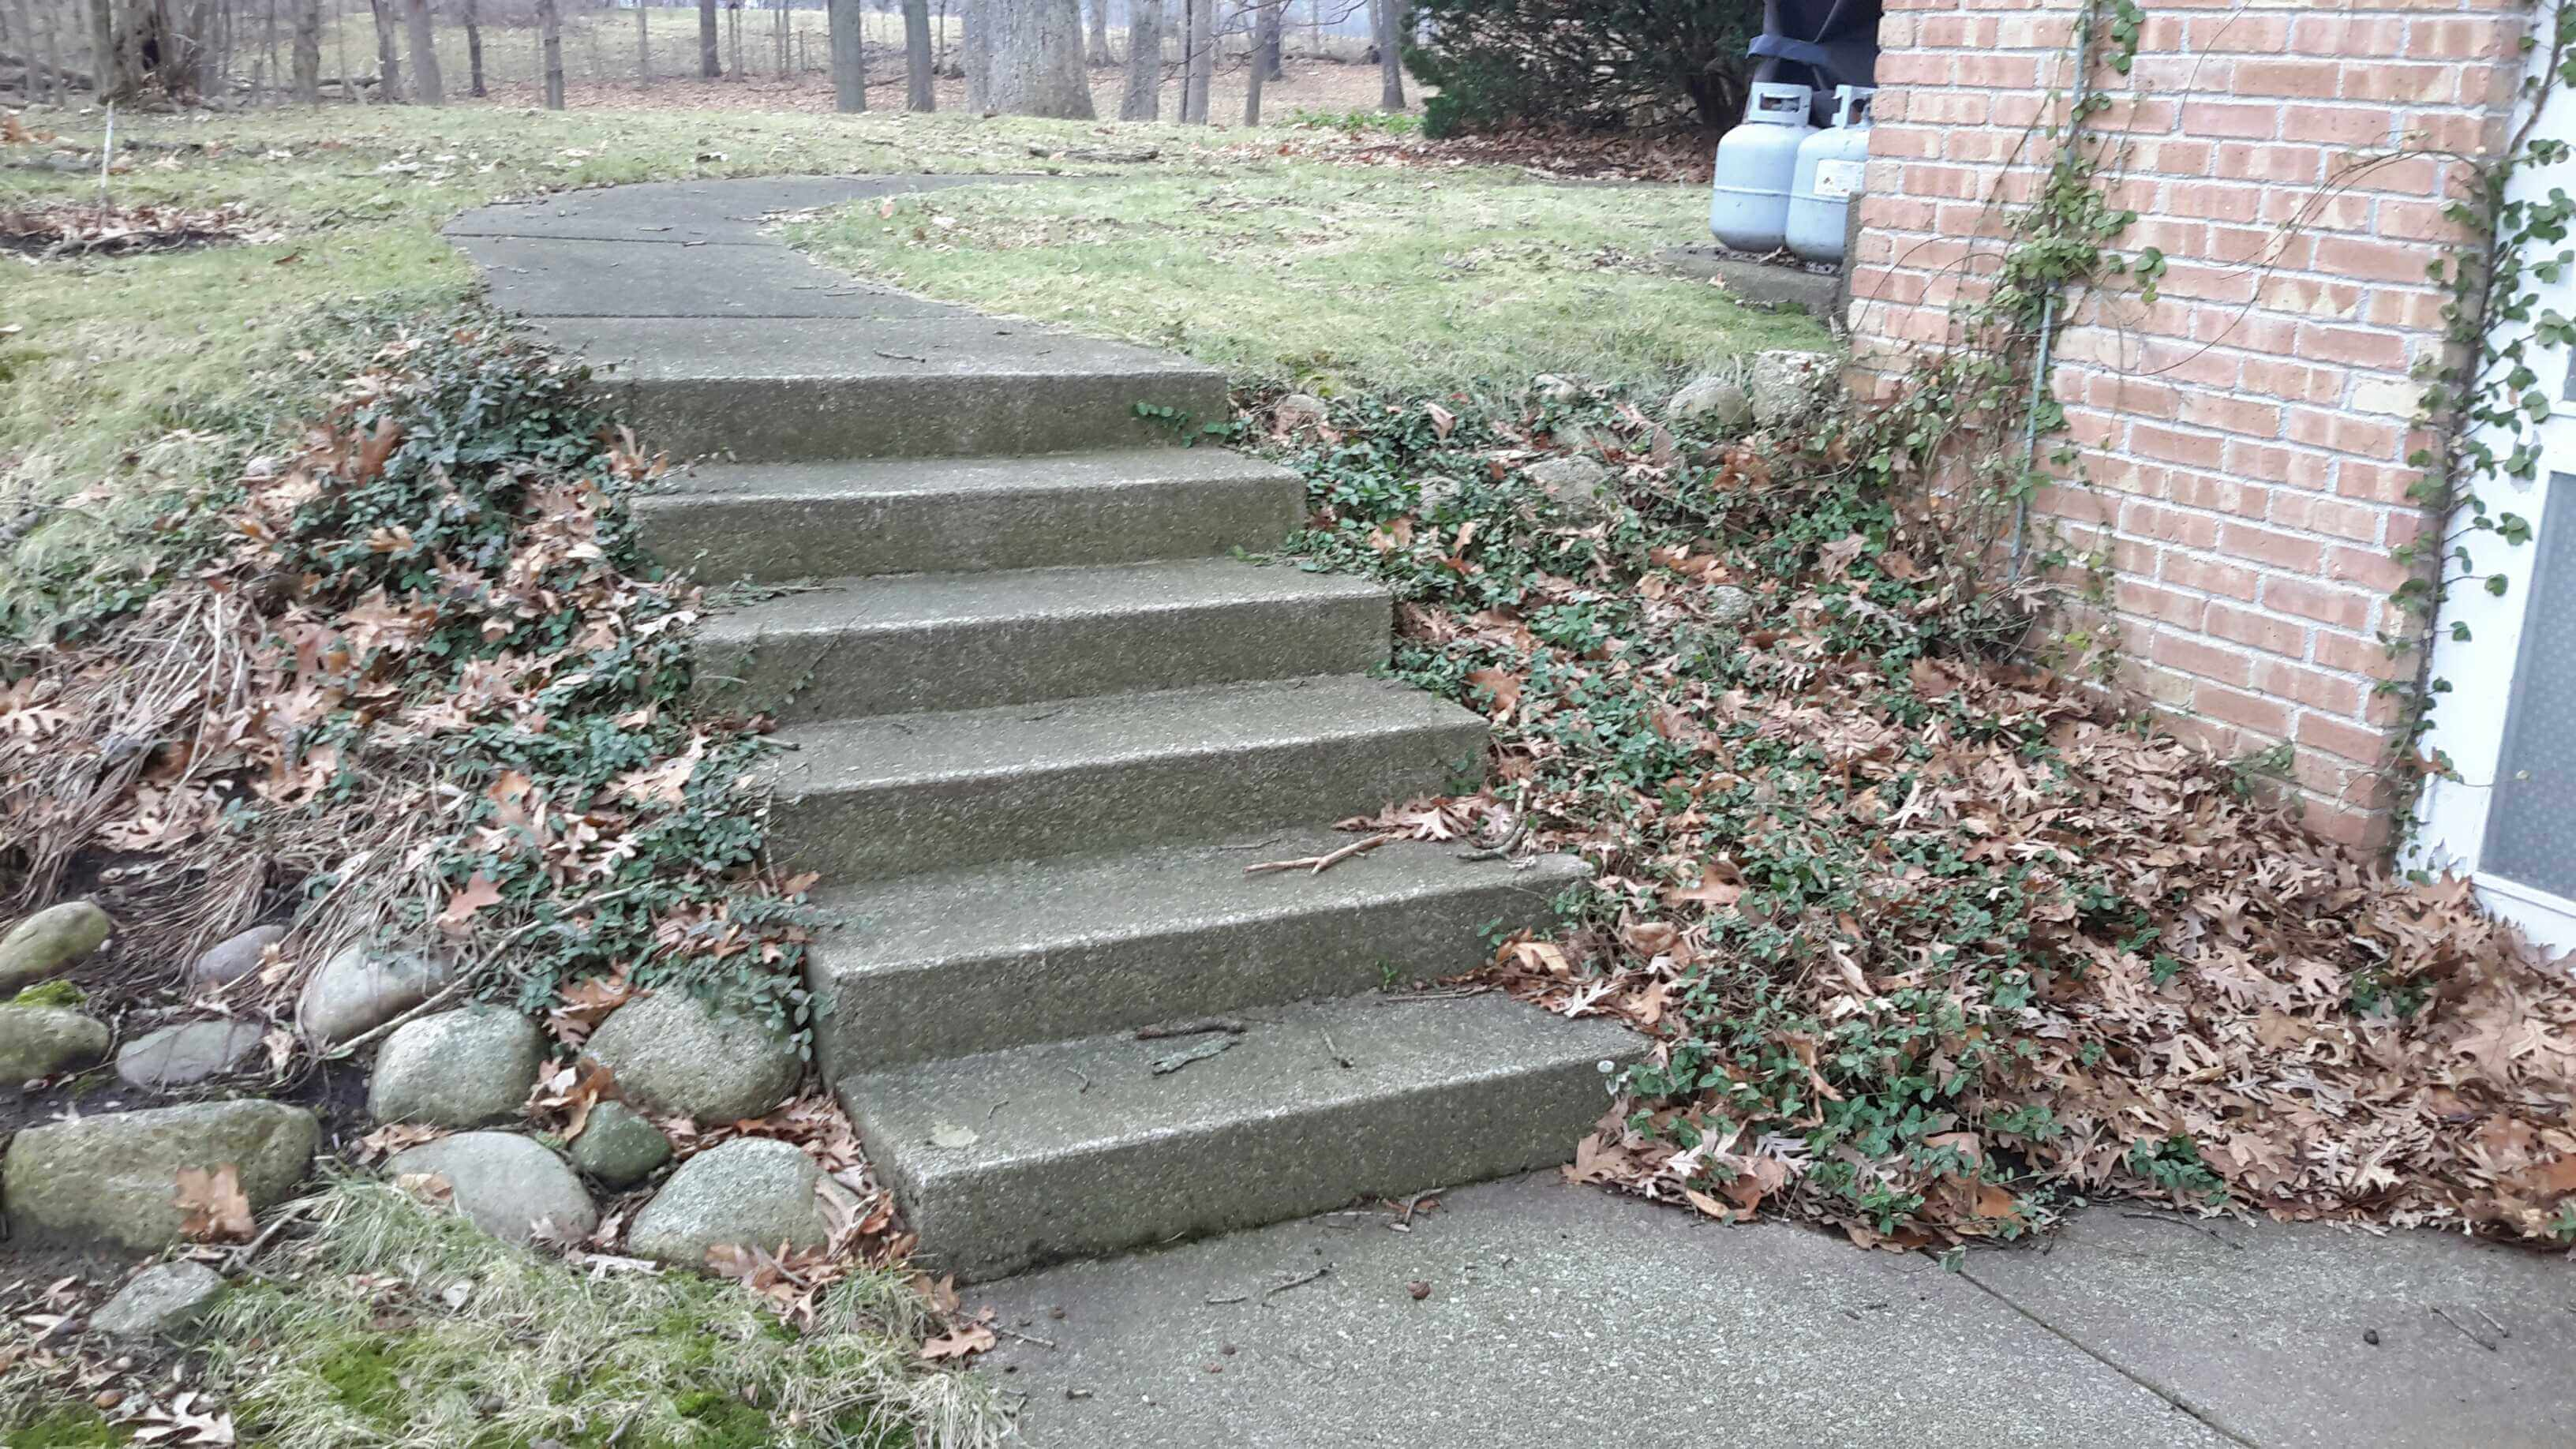 sloped stairs. no guardrail